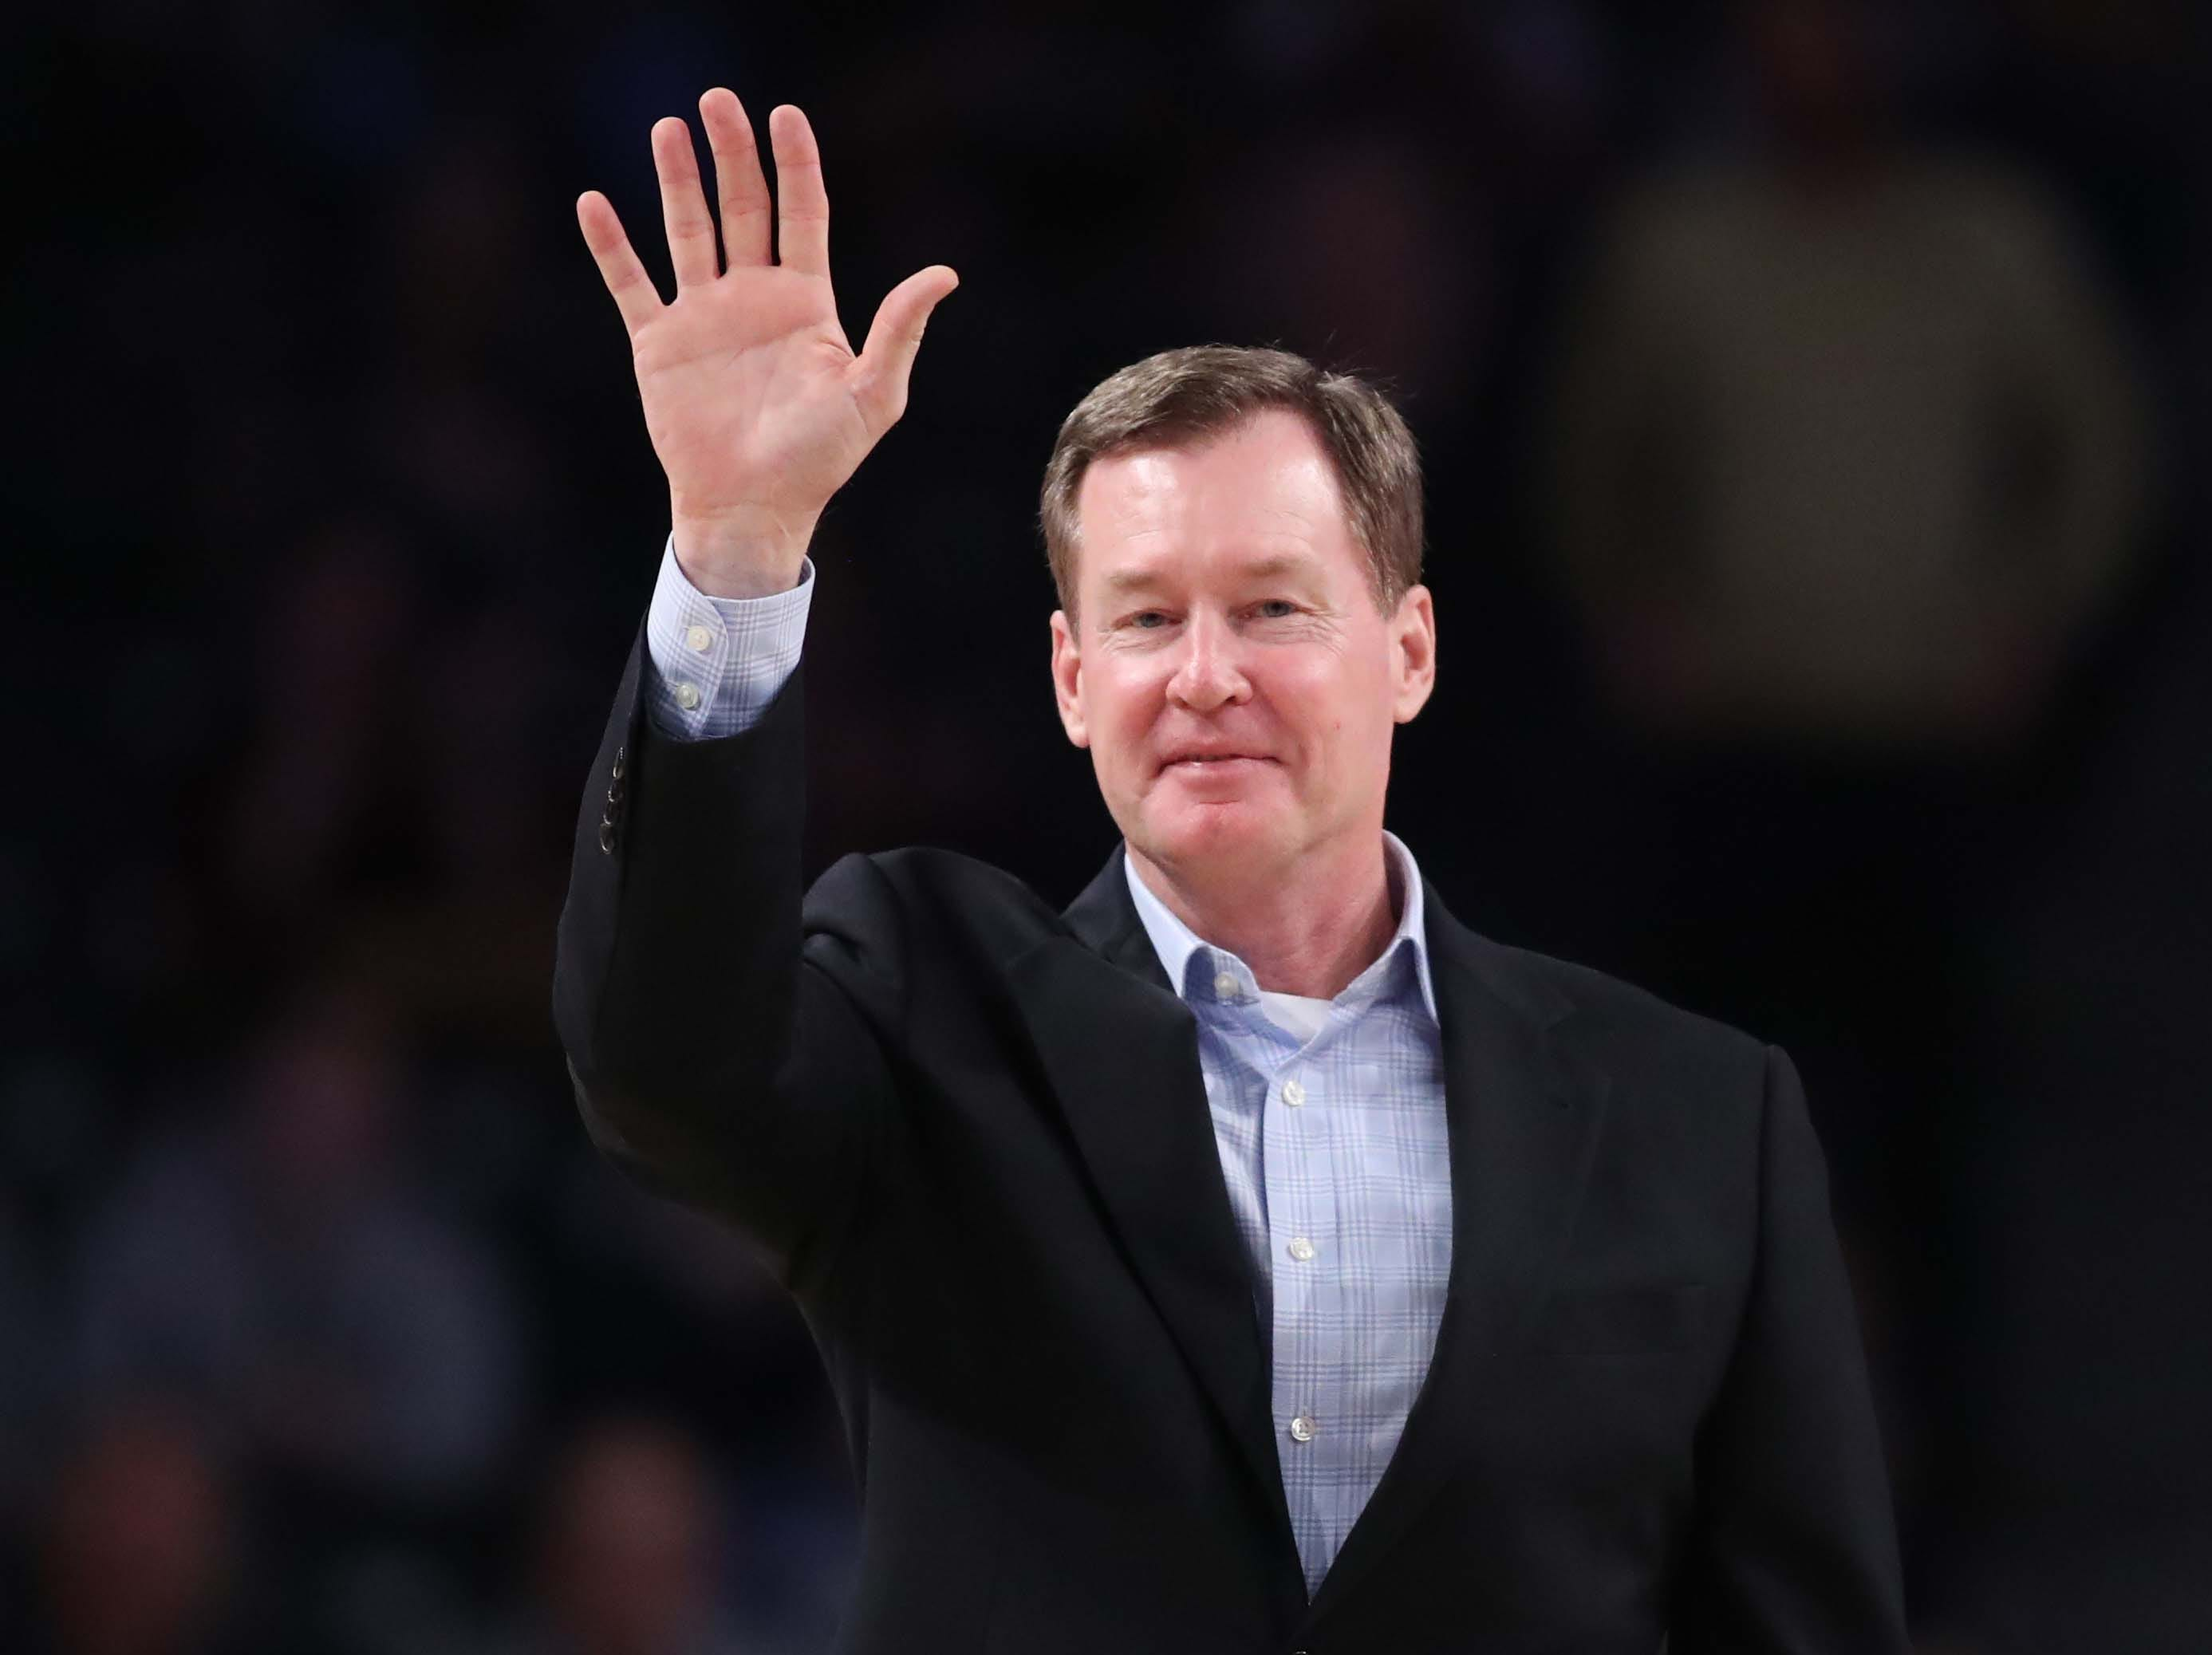 Feb 16, 2019; Atlanta, GA, USA; Former Georgia Tech Yellow Jackets basketball player Mark Price waves to the crowd during the Georgia Tech's game against the Florida State Seminoles at McCamish Pavilion. Mandatory Credit: Jason Getz-USA TODAY Sports